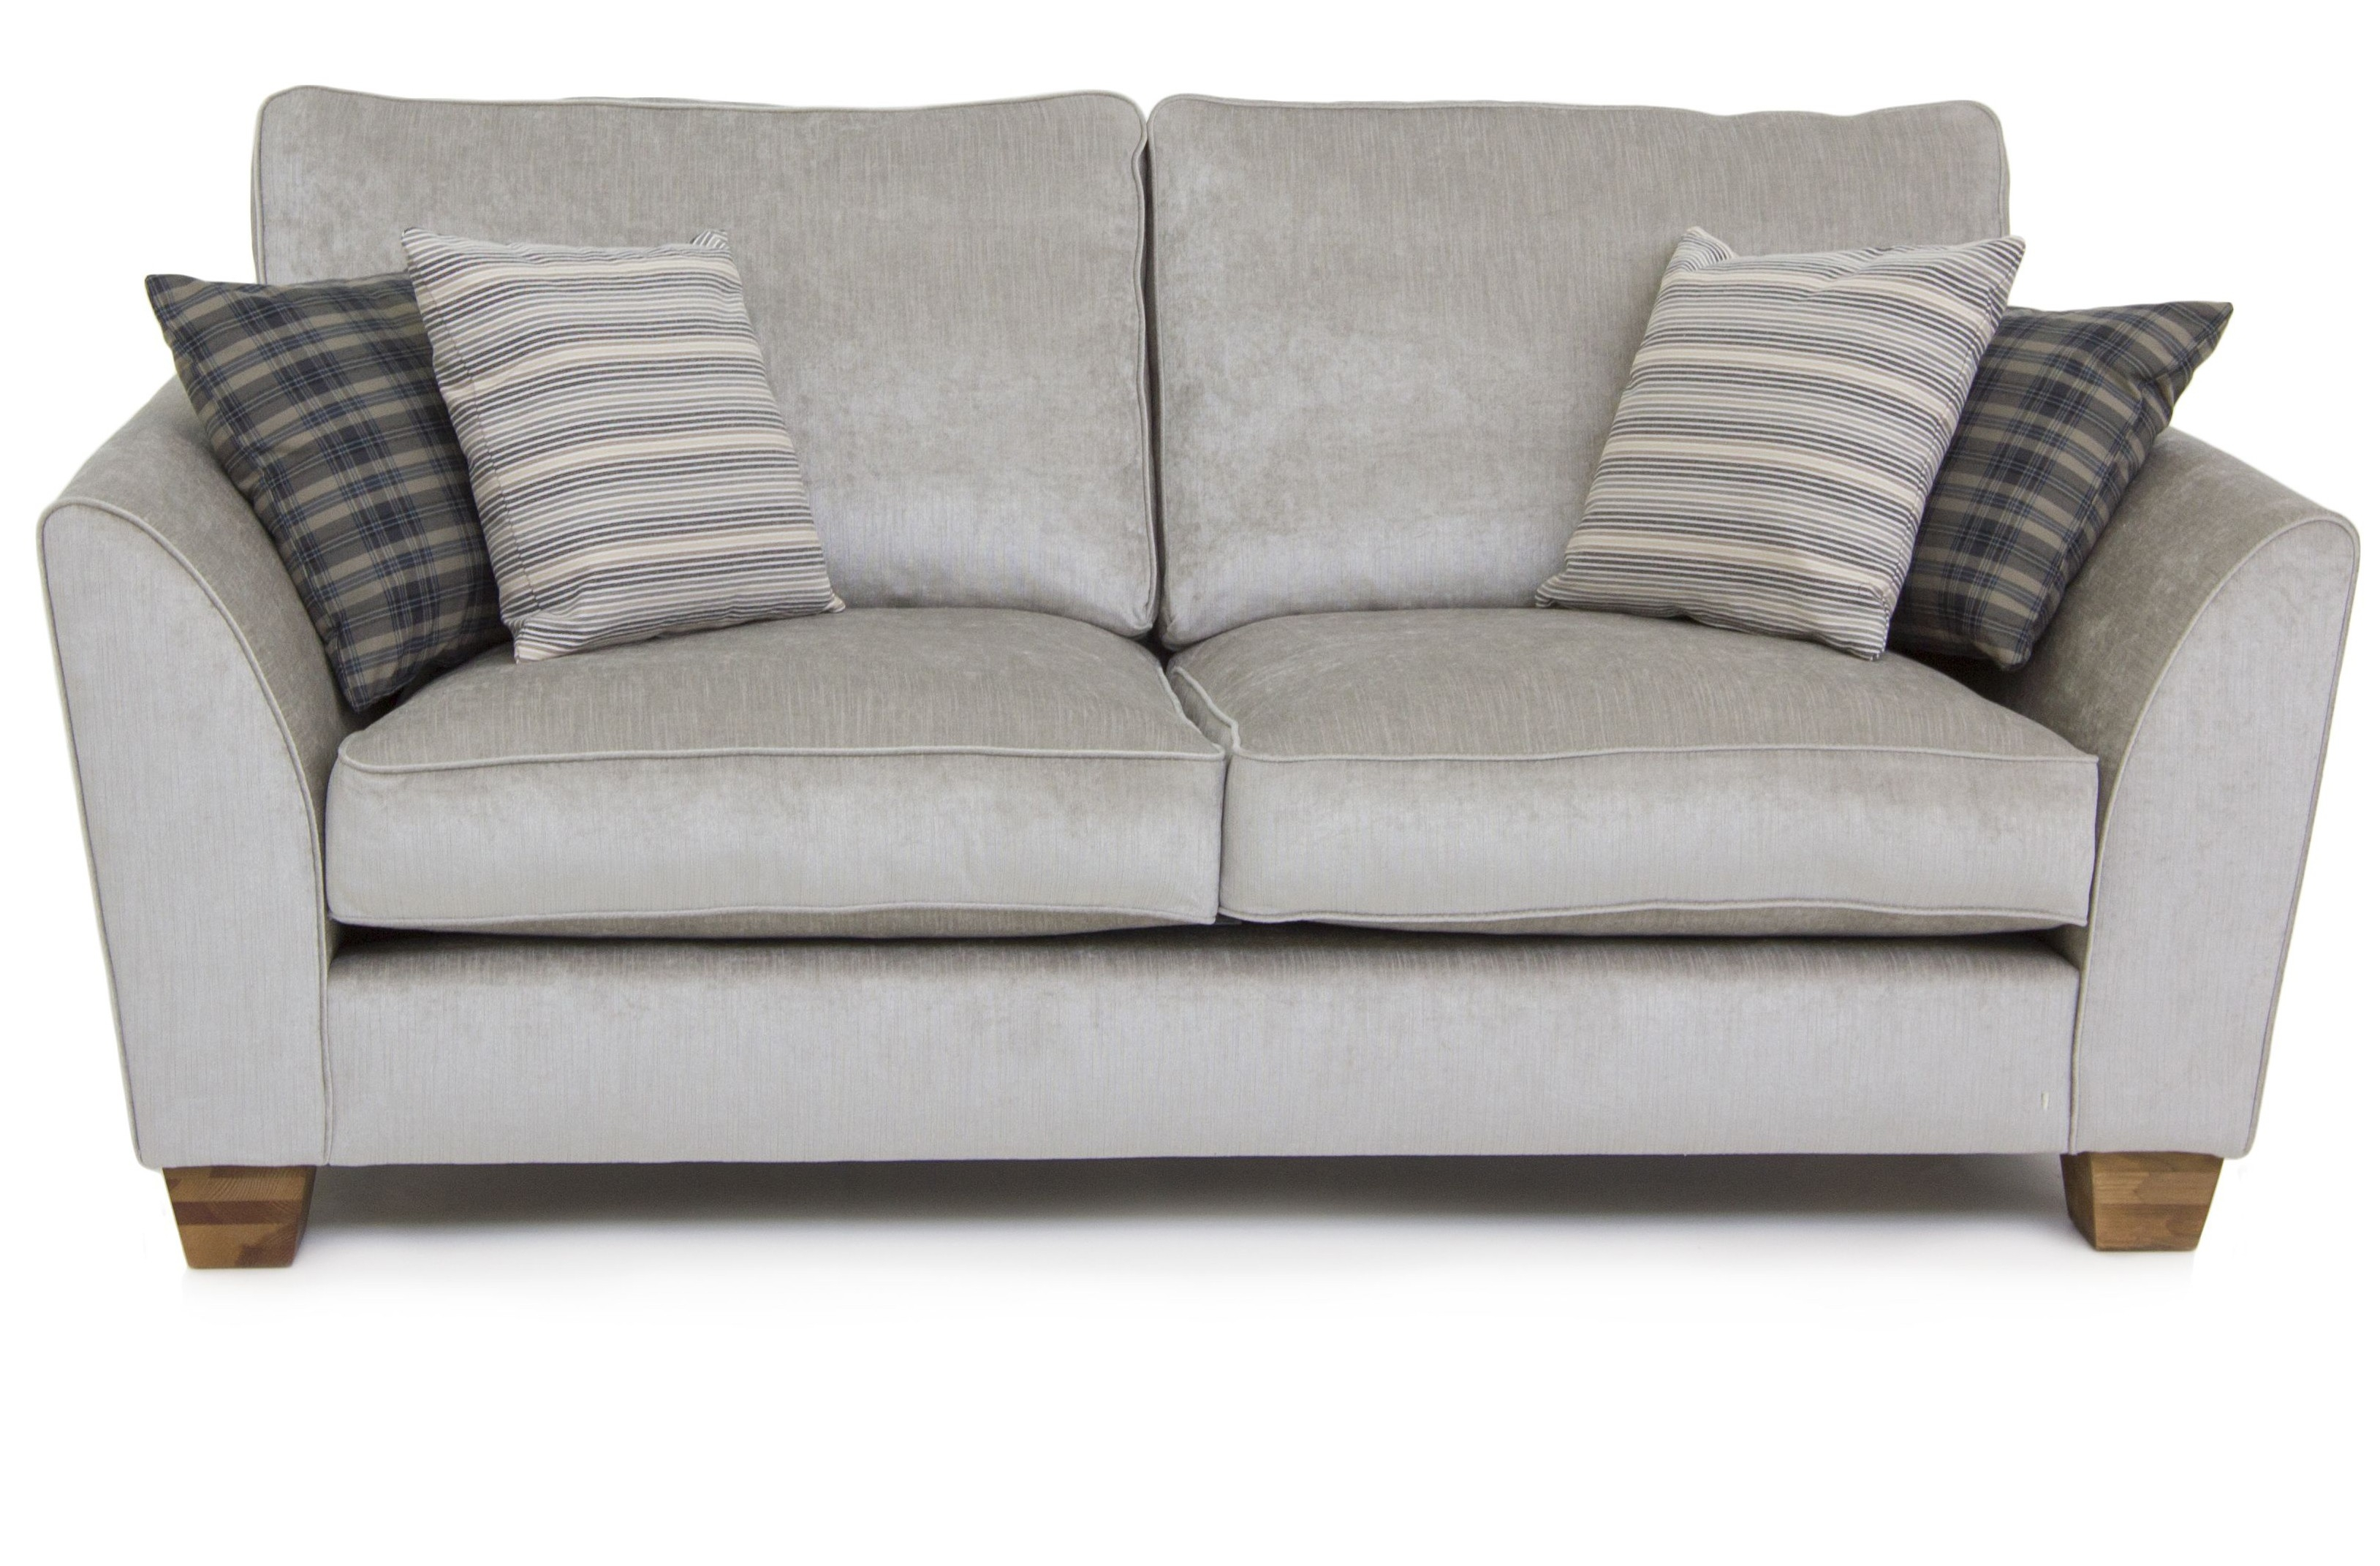 Small 2 Seater Sofa 81 With Small 2 Seater Sofa Jinanhongyu Within Small 2 Seater Sofas (Image 7 of 15)